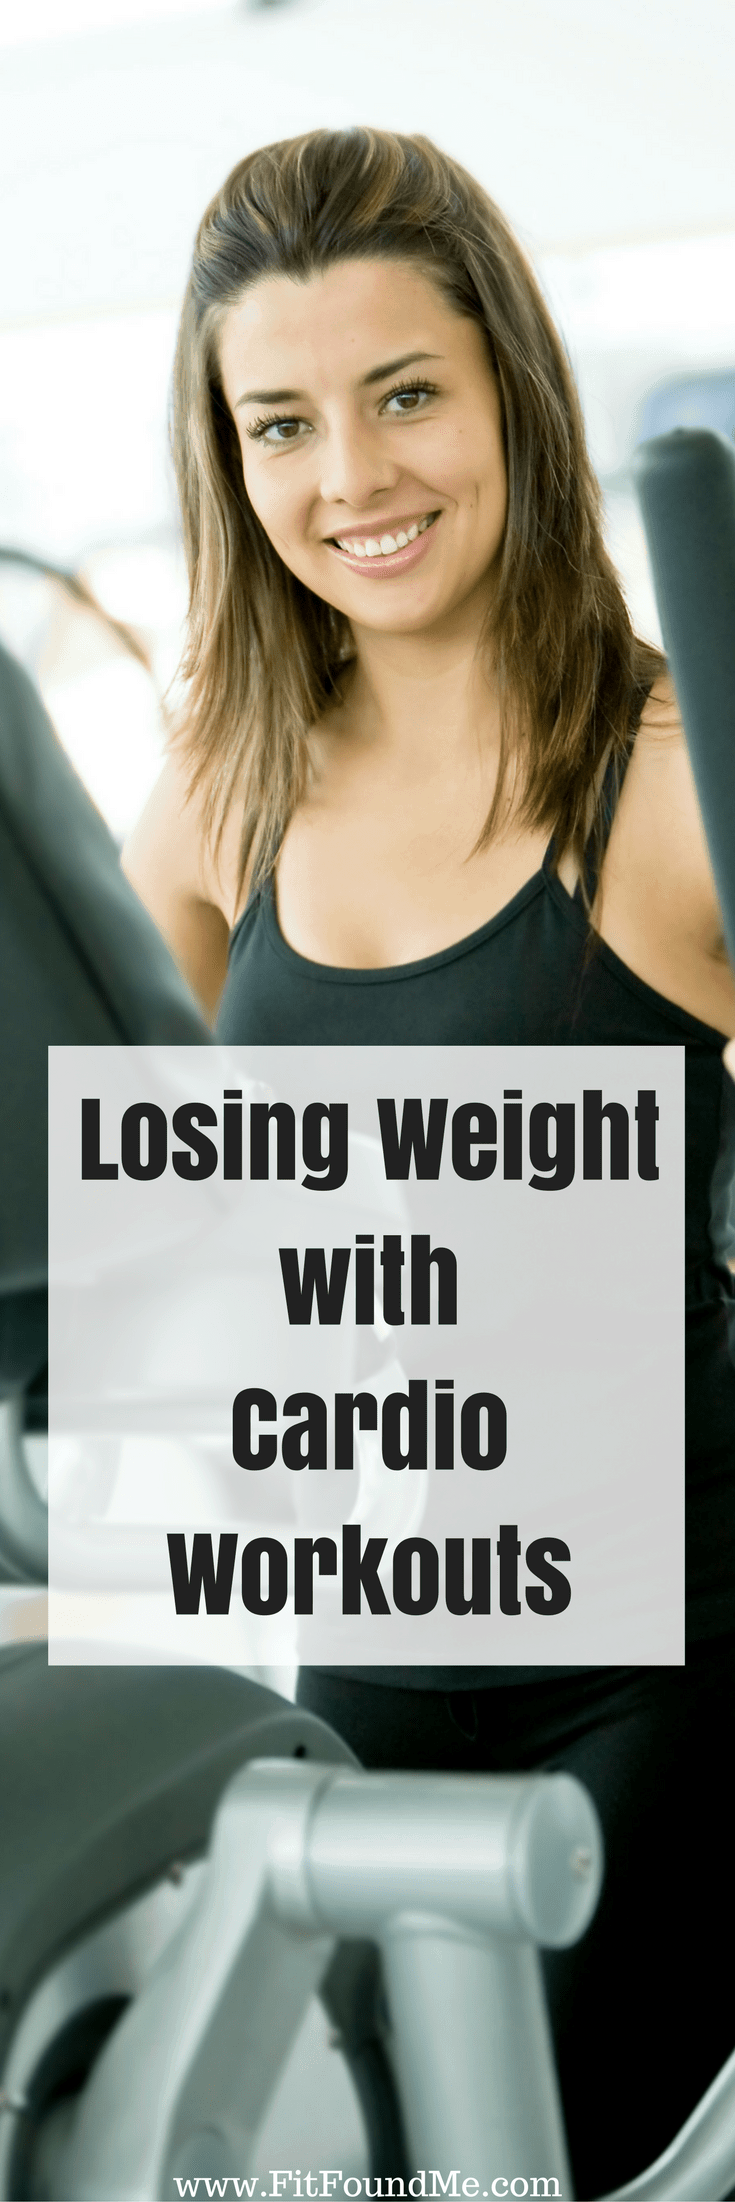 cardio workout for women